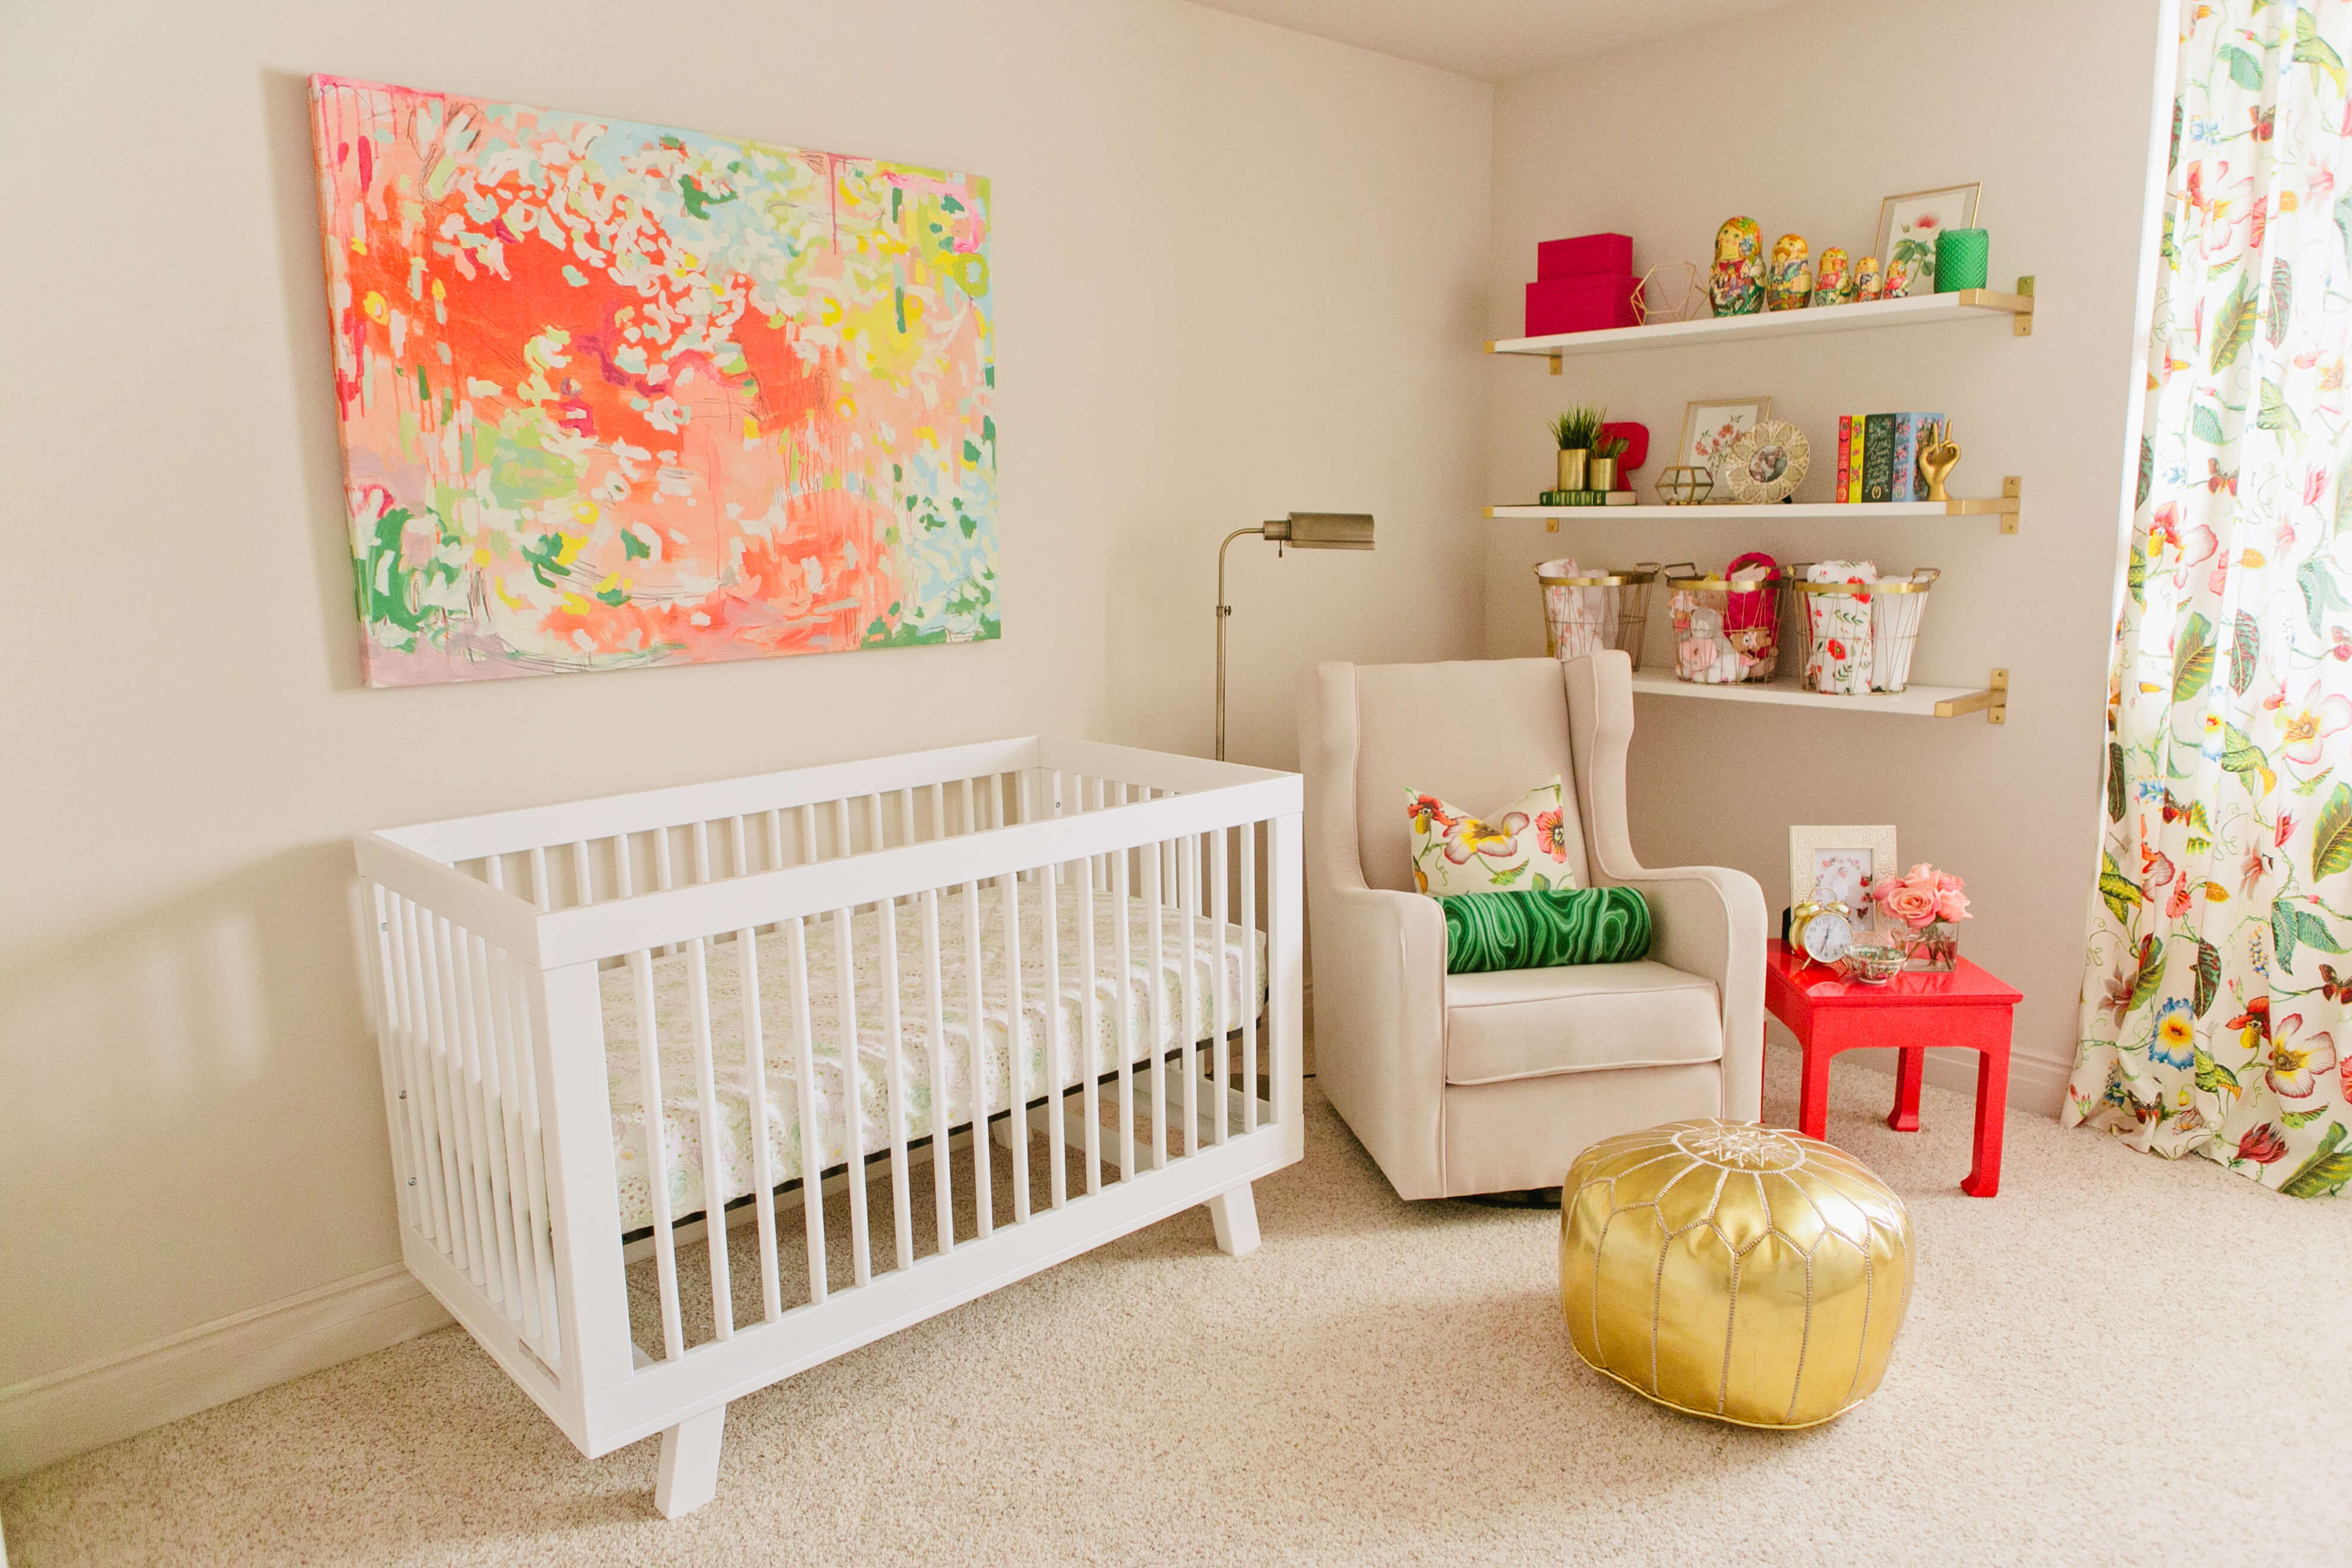 Decor design that can meet different ages for your child